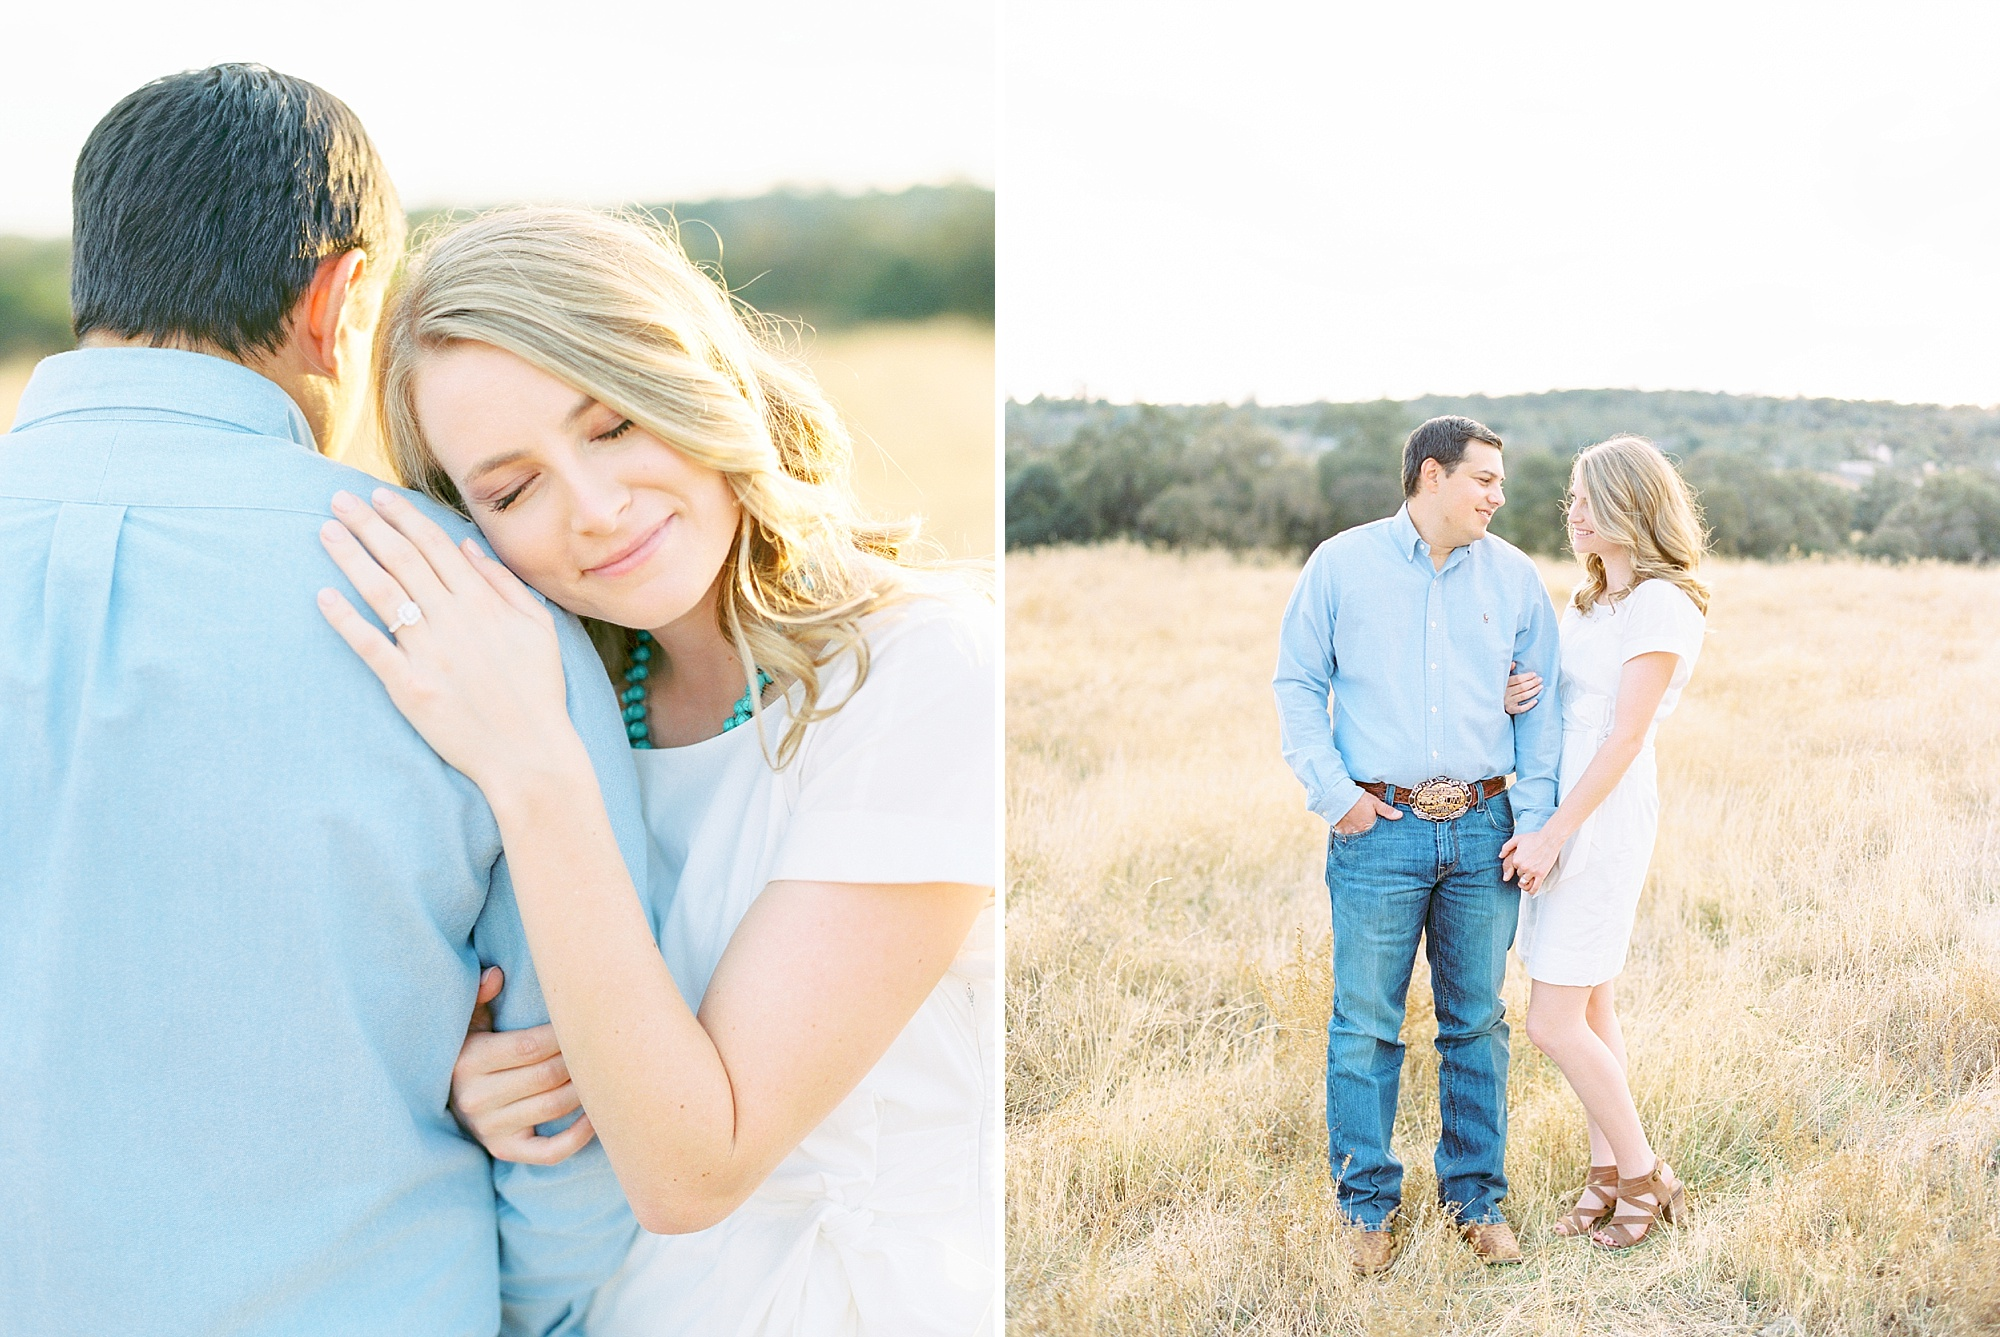 Golden Hills Engagement Session - Film Engagement Session - Ashley Baumgartner - Sacramento Wedding Photography - Stone Barn Ranch Wedding Couple_0020.jpg